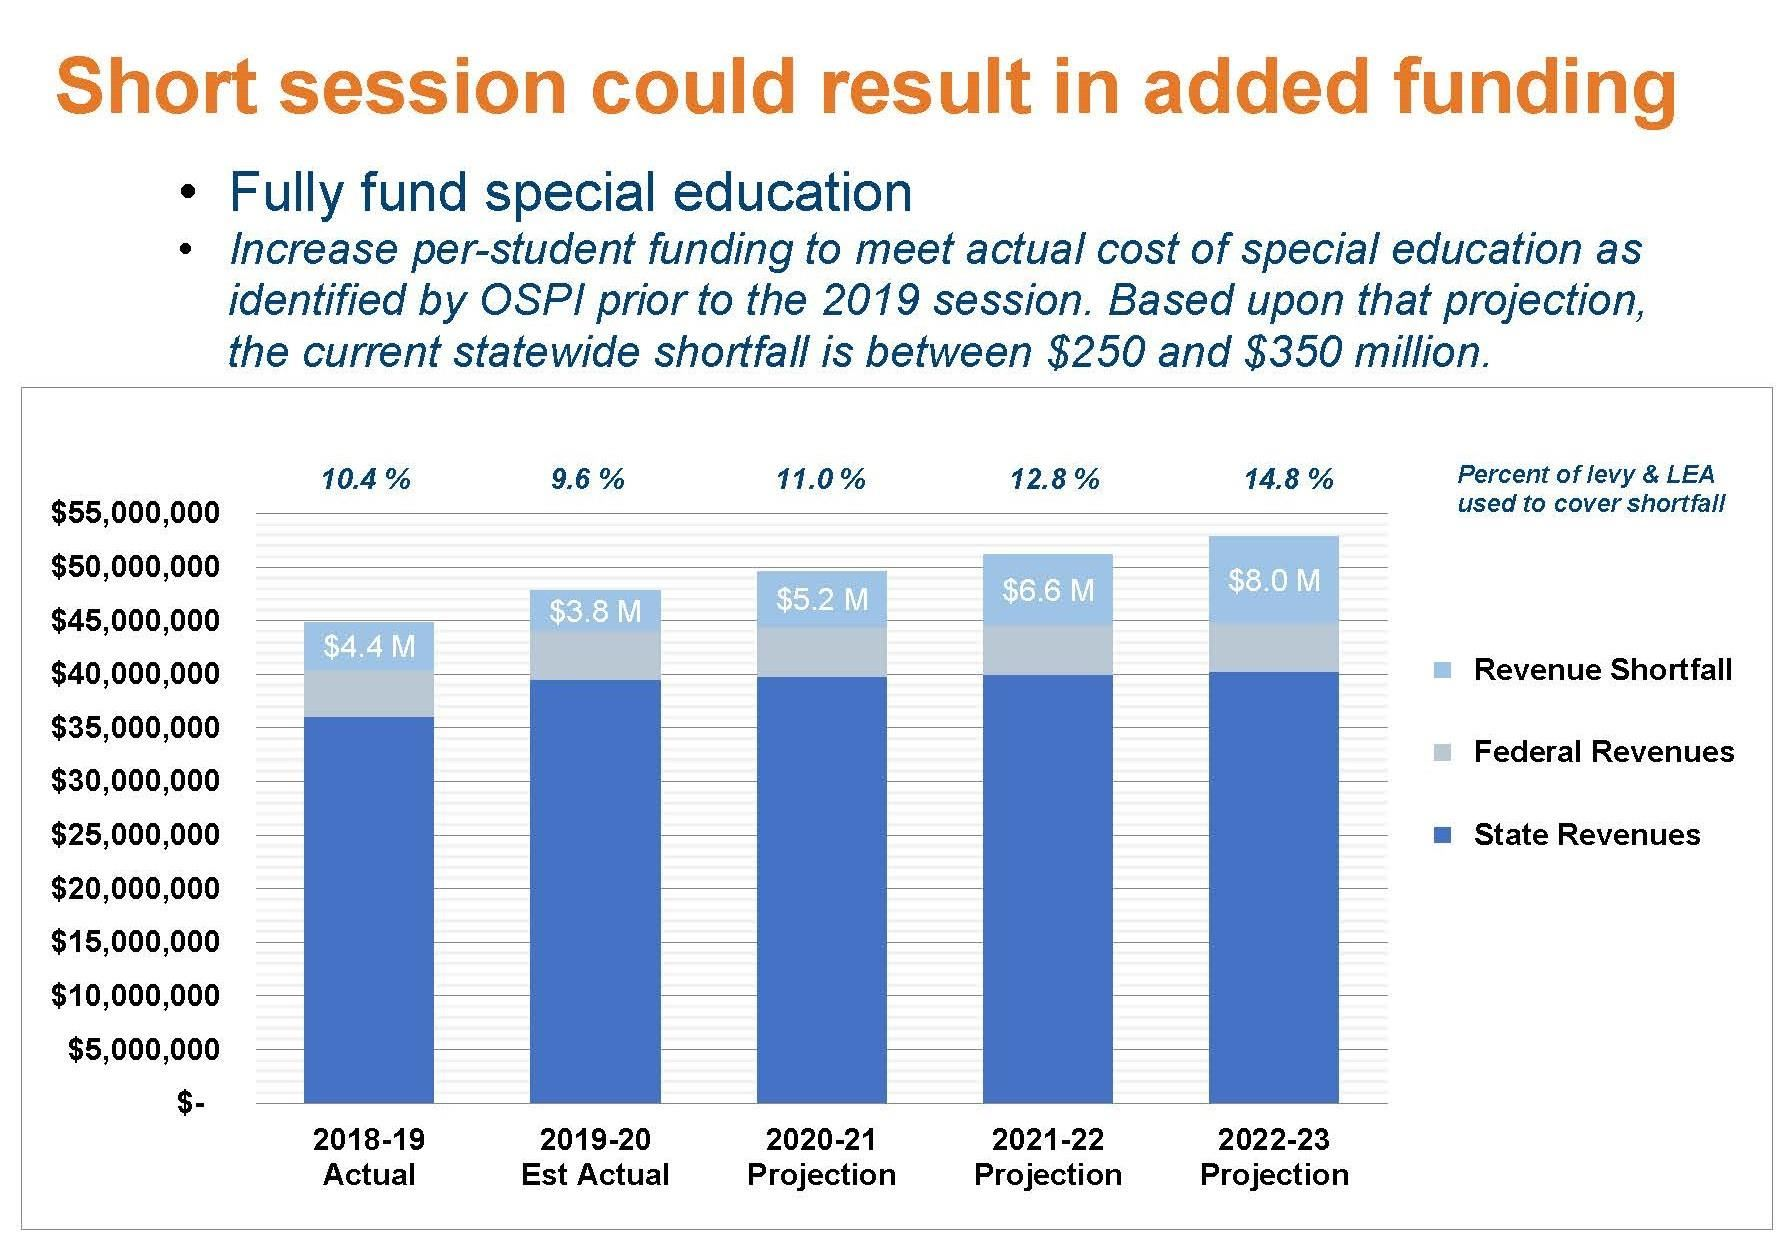 Fully Fund Special Education Chart